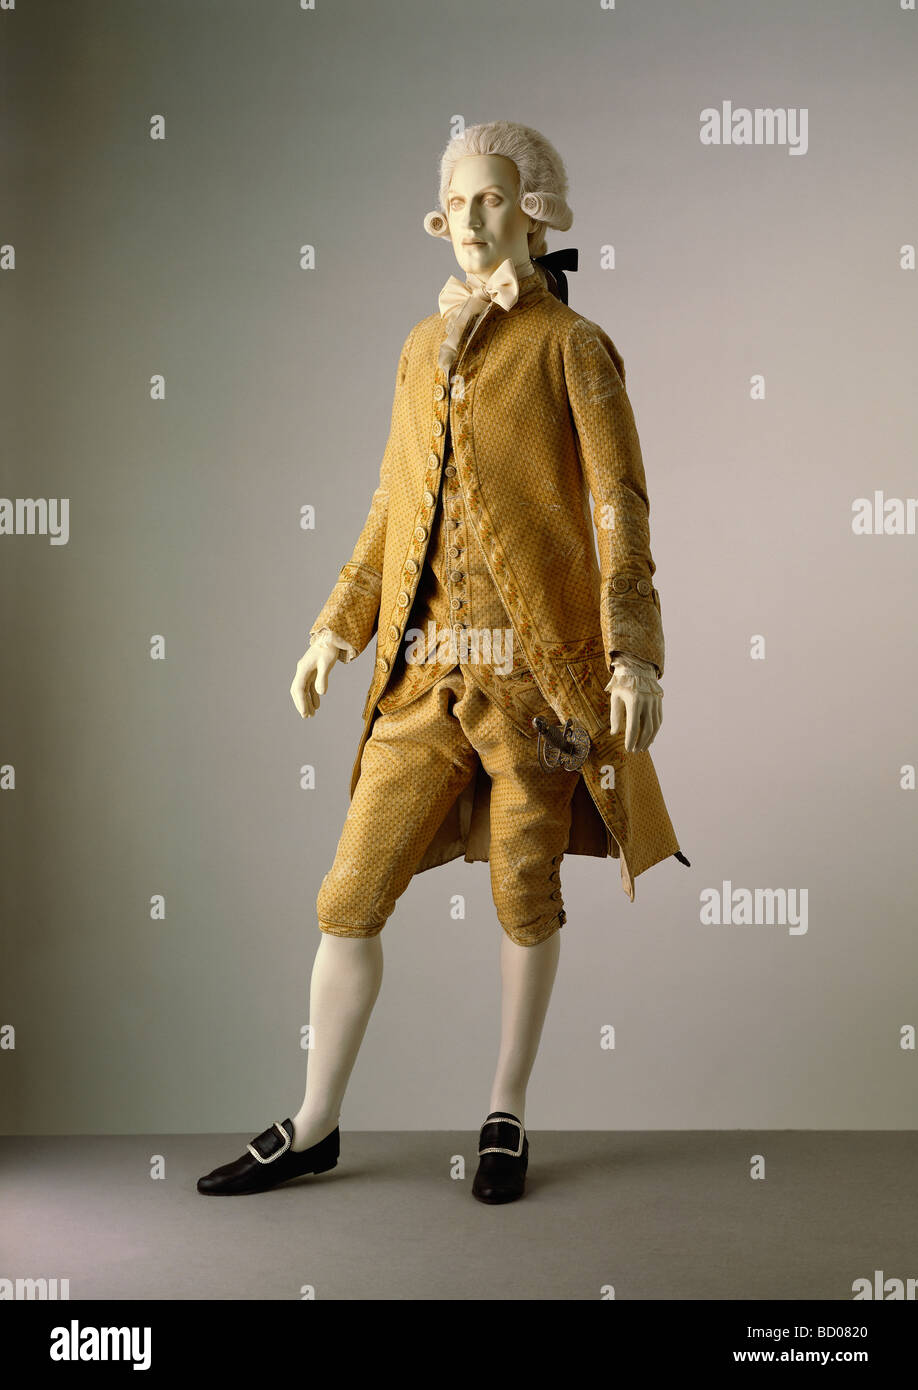 Dress Suit France Late 18th Century Stock Photo 25207224 Alamy